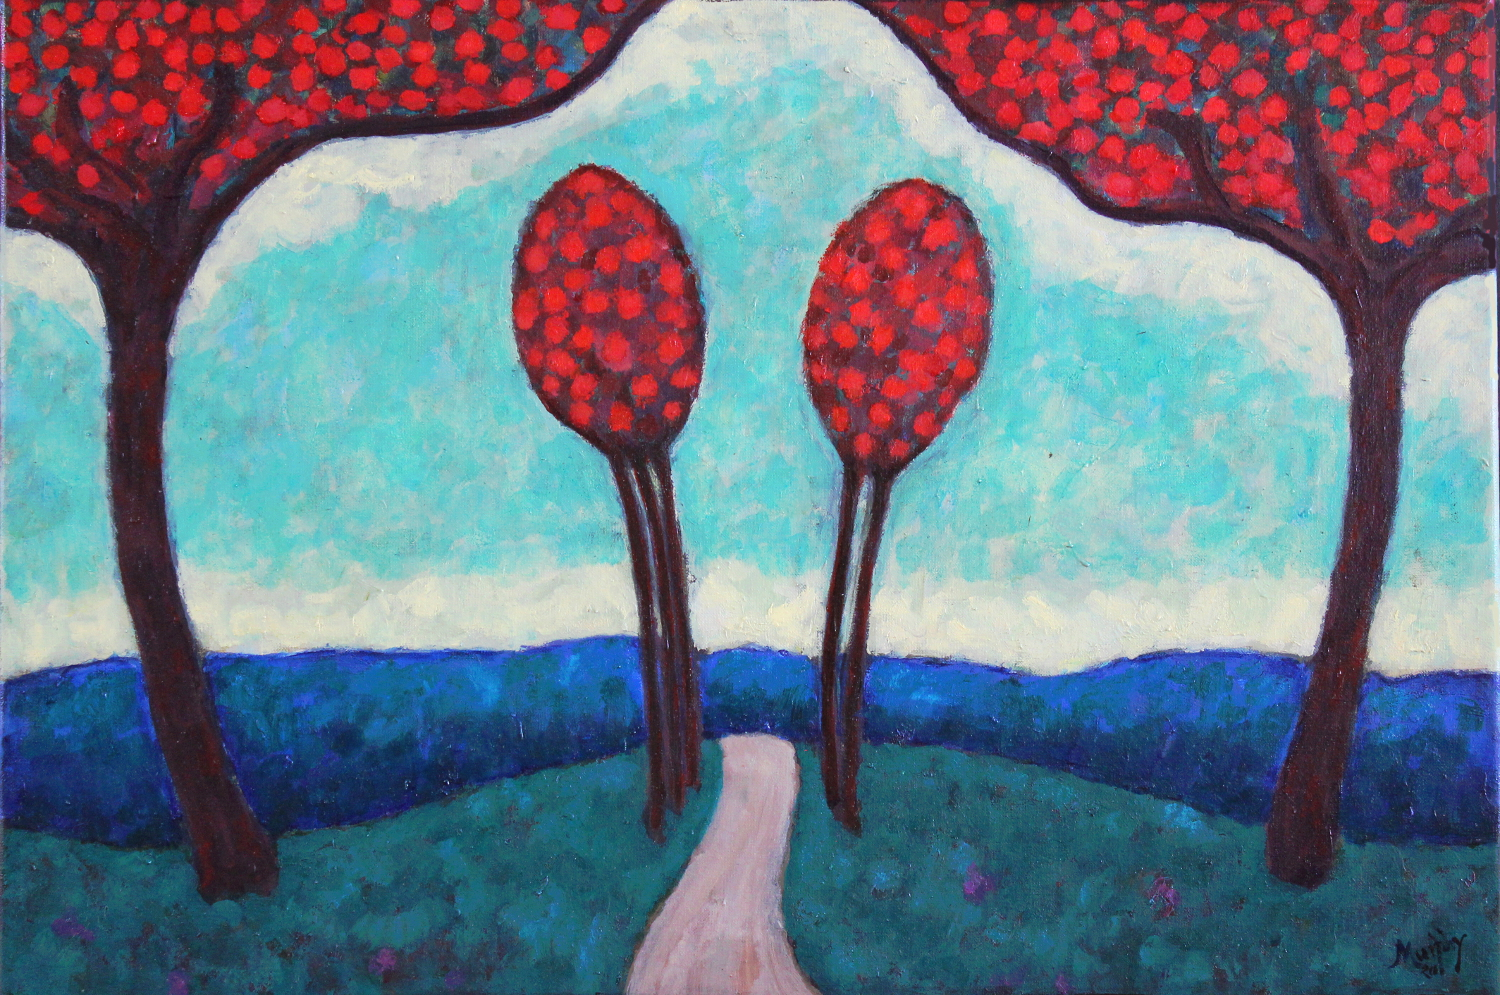 The-Road-to-Campostella-81-x-54-cm-oil-on-canvas-web